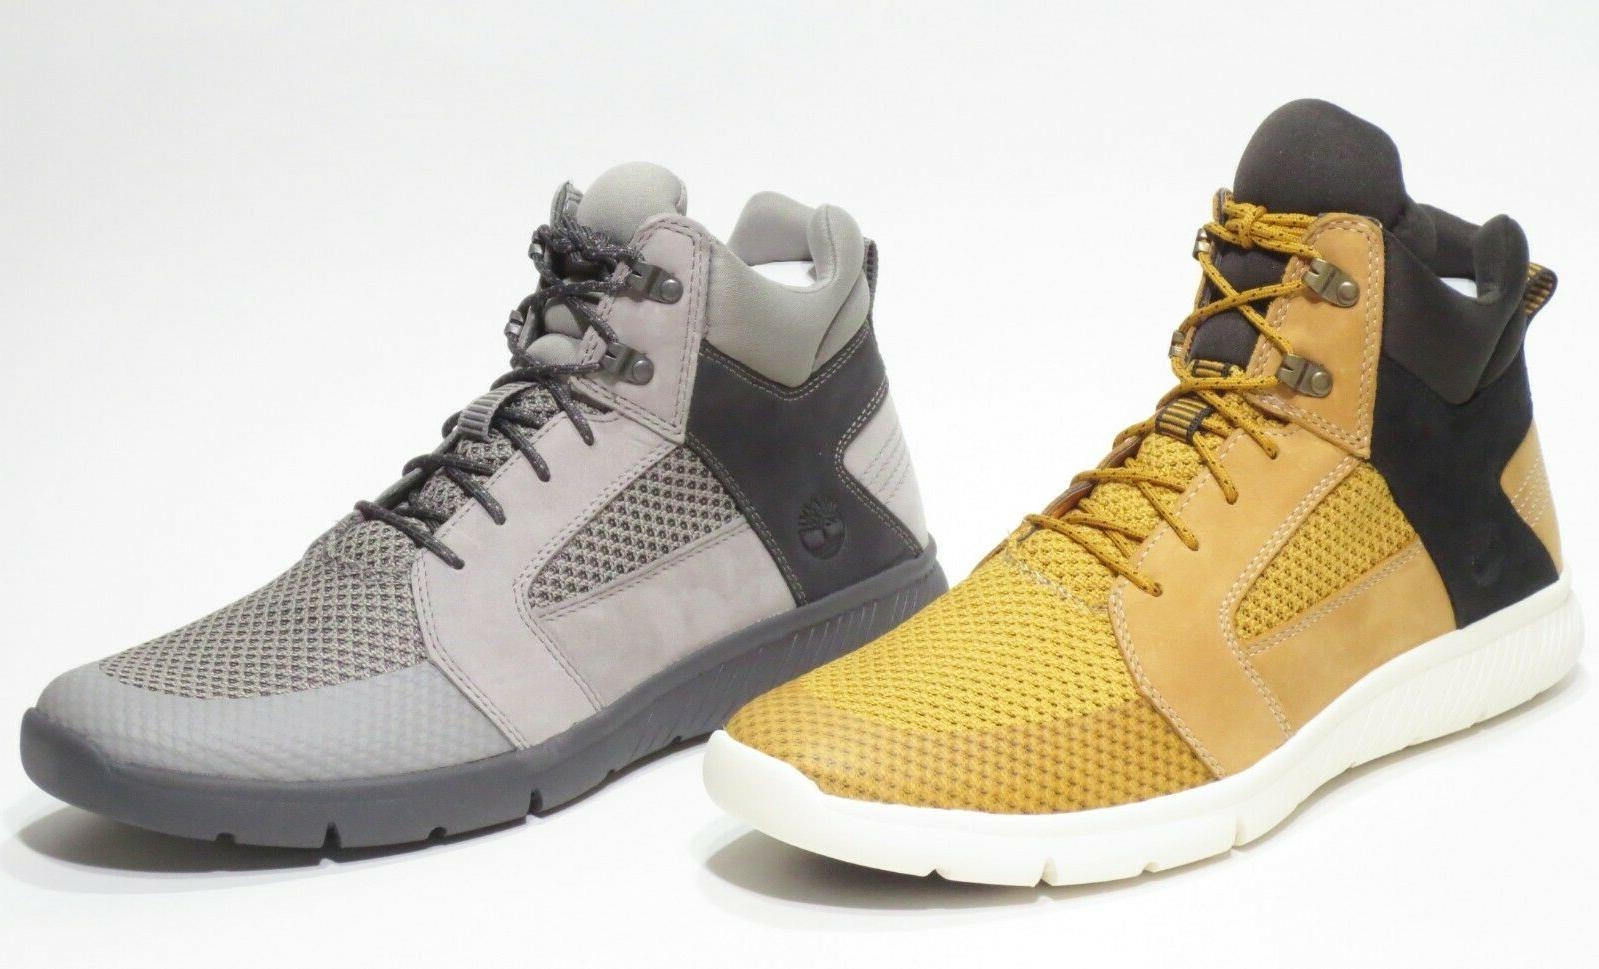 Timberland Men's Mid Lightweight Shoe or Wheat